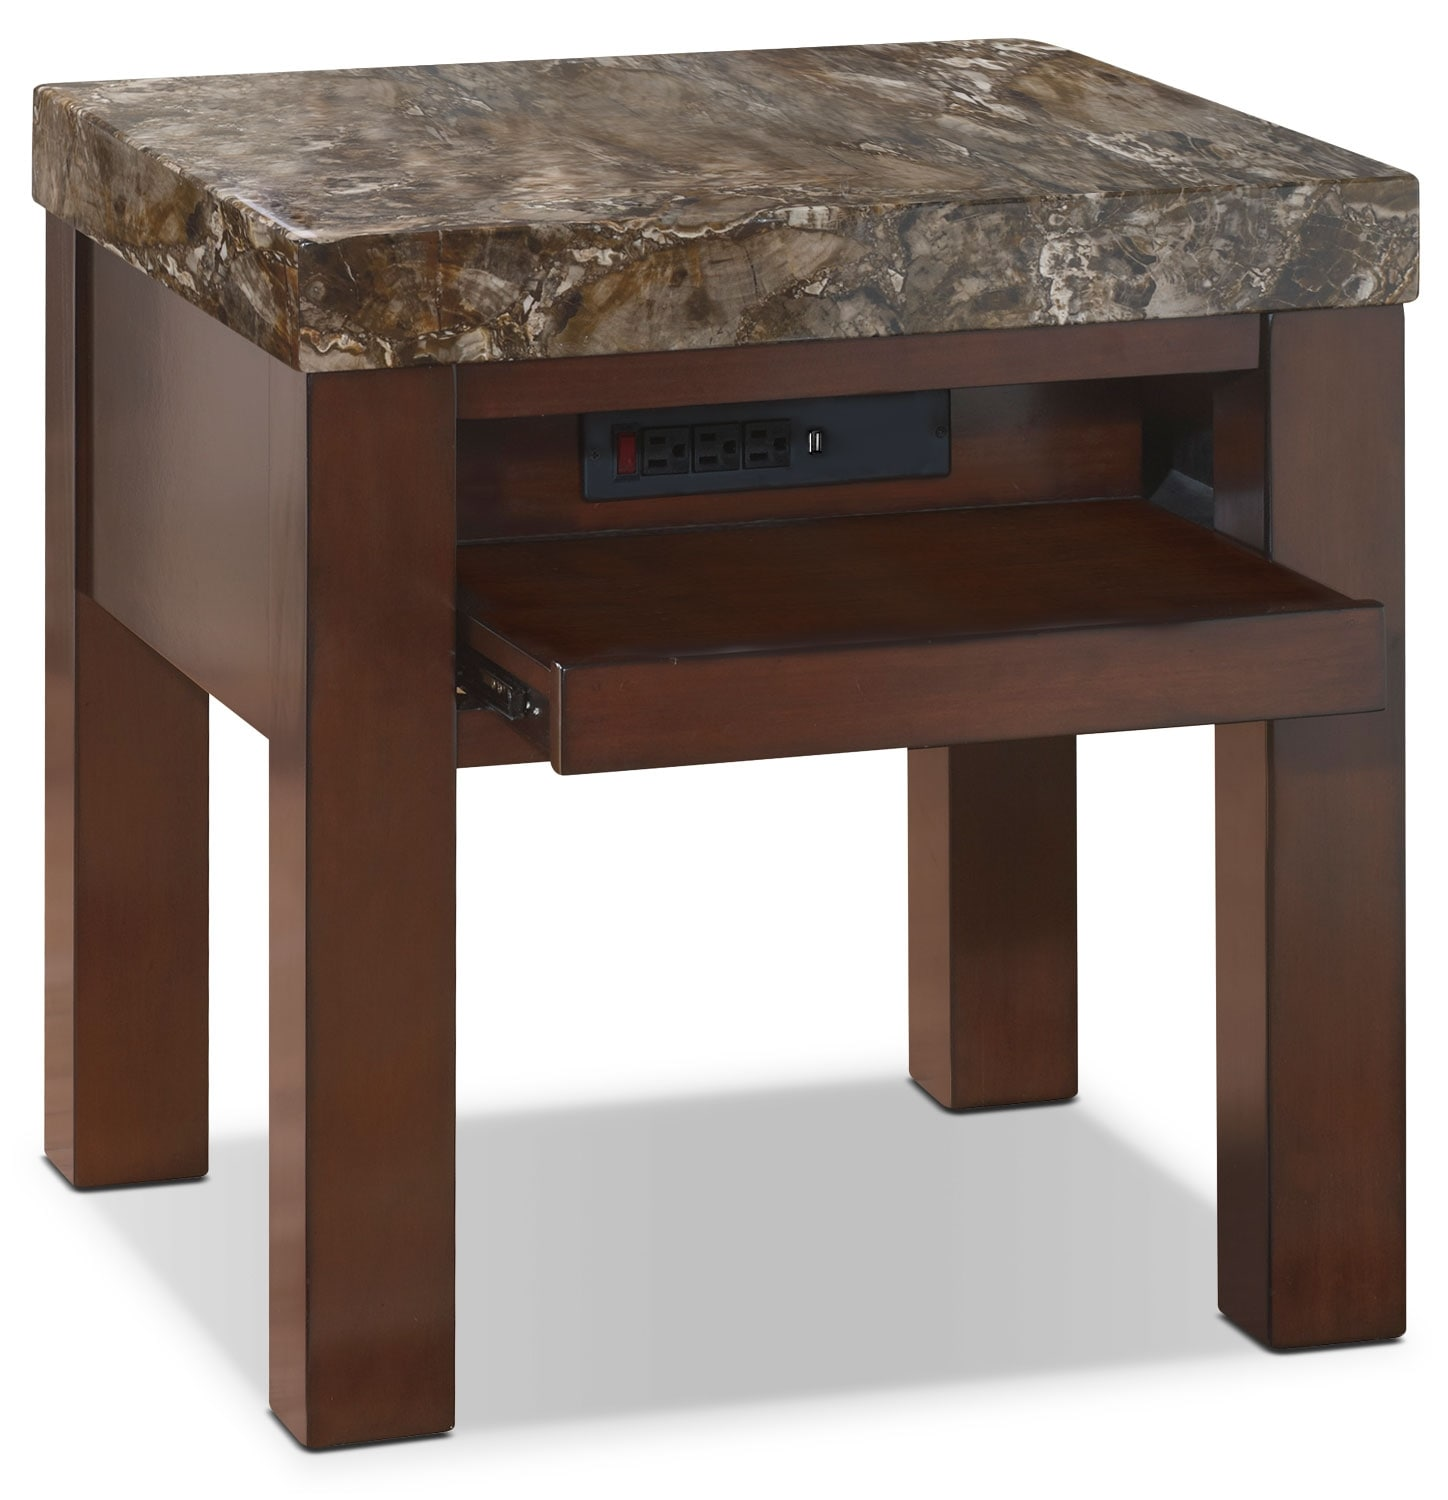 Lift Top Coffee Table Hardware Canada: Emerson Coffee Table With Lift Top